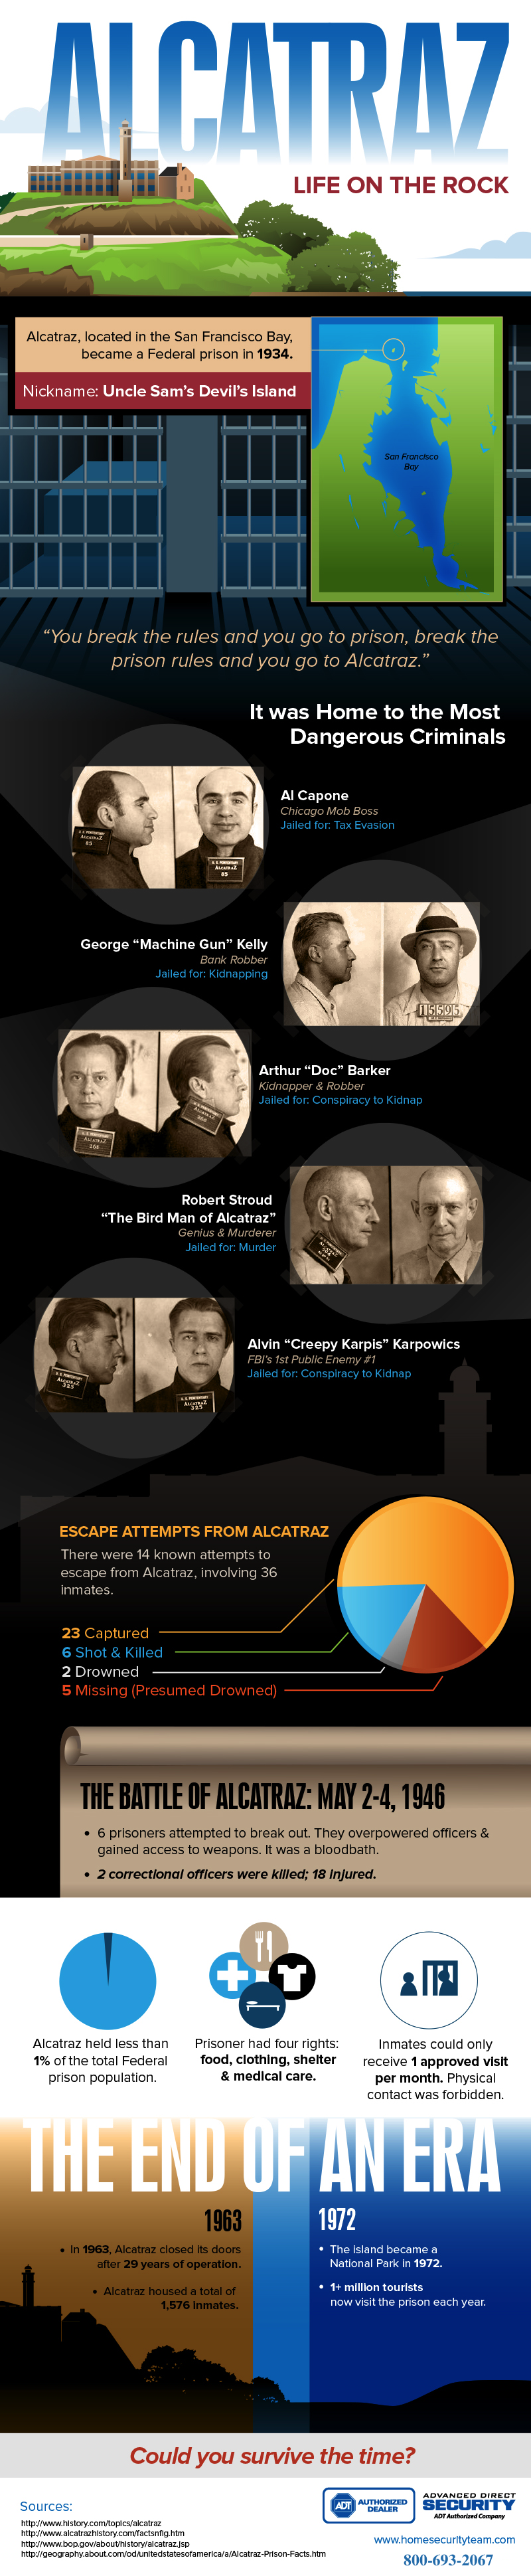 Alcatraz - Life on the Rock [Infographic]